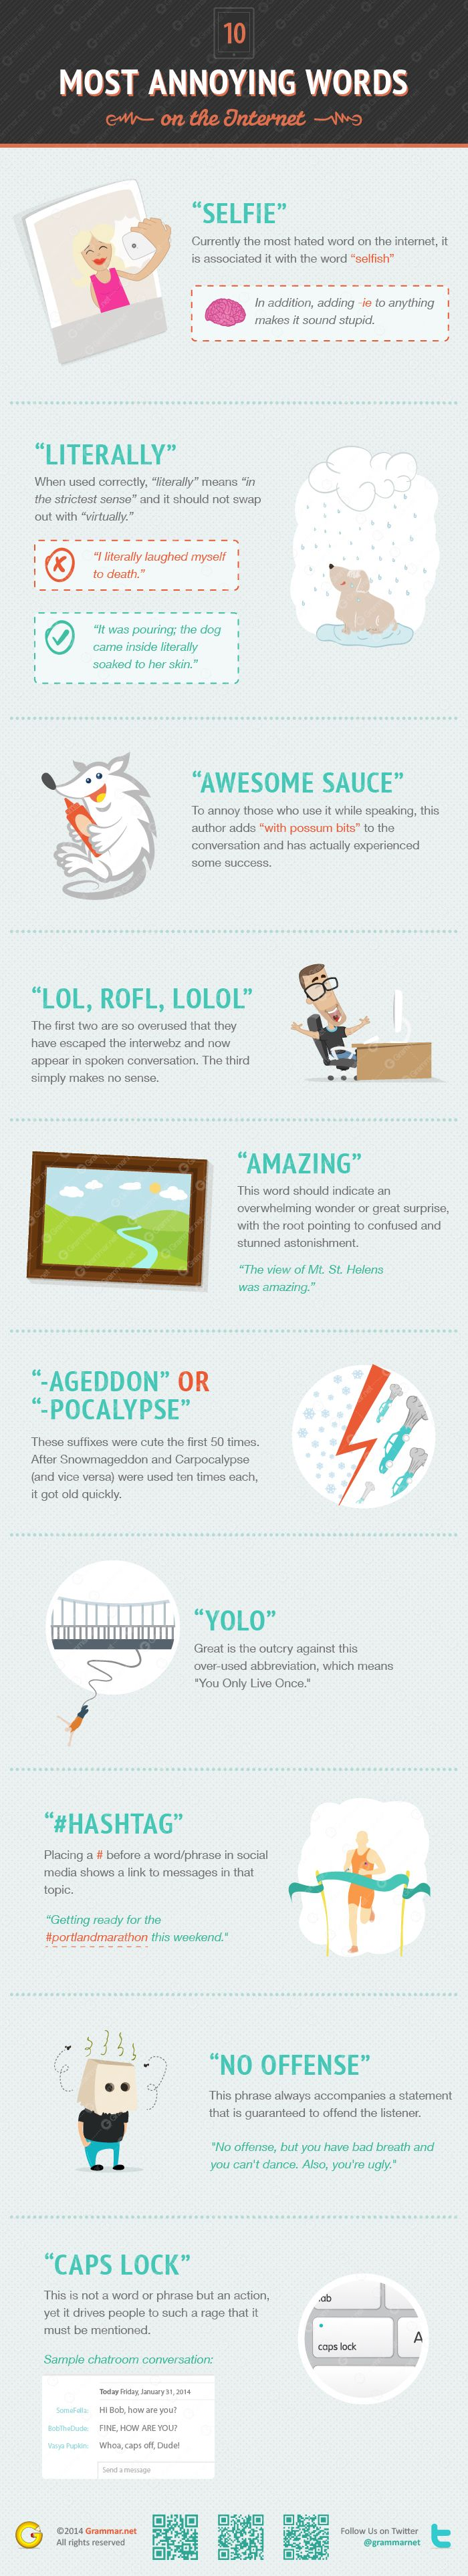 10 irritating words - infographic_small-01-2